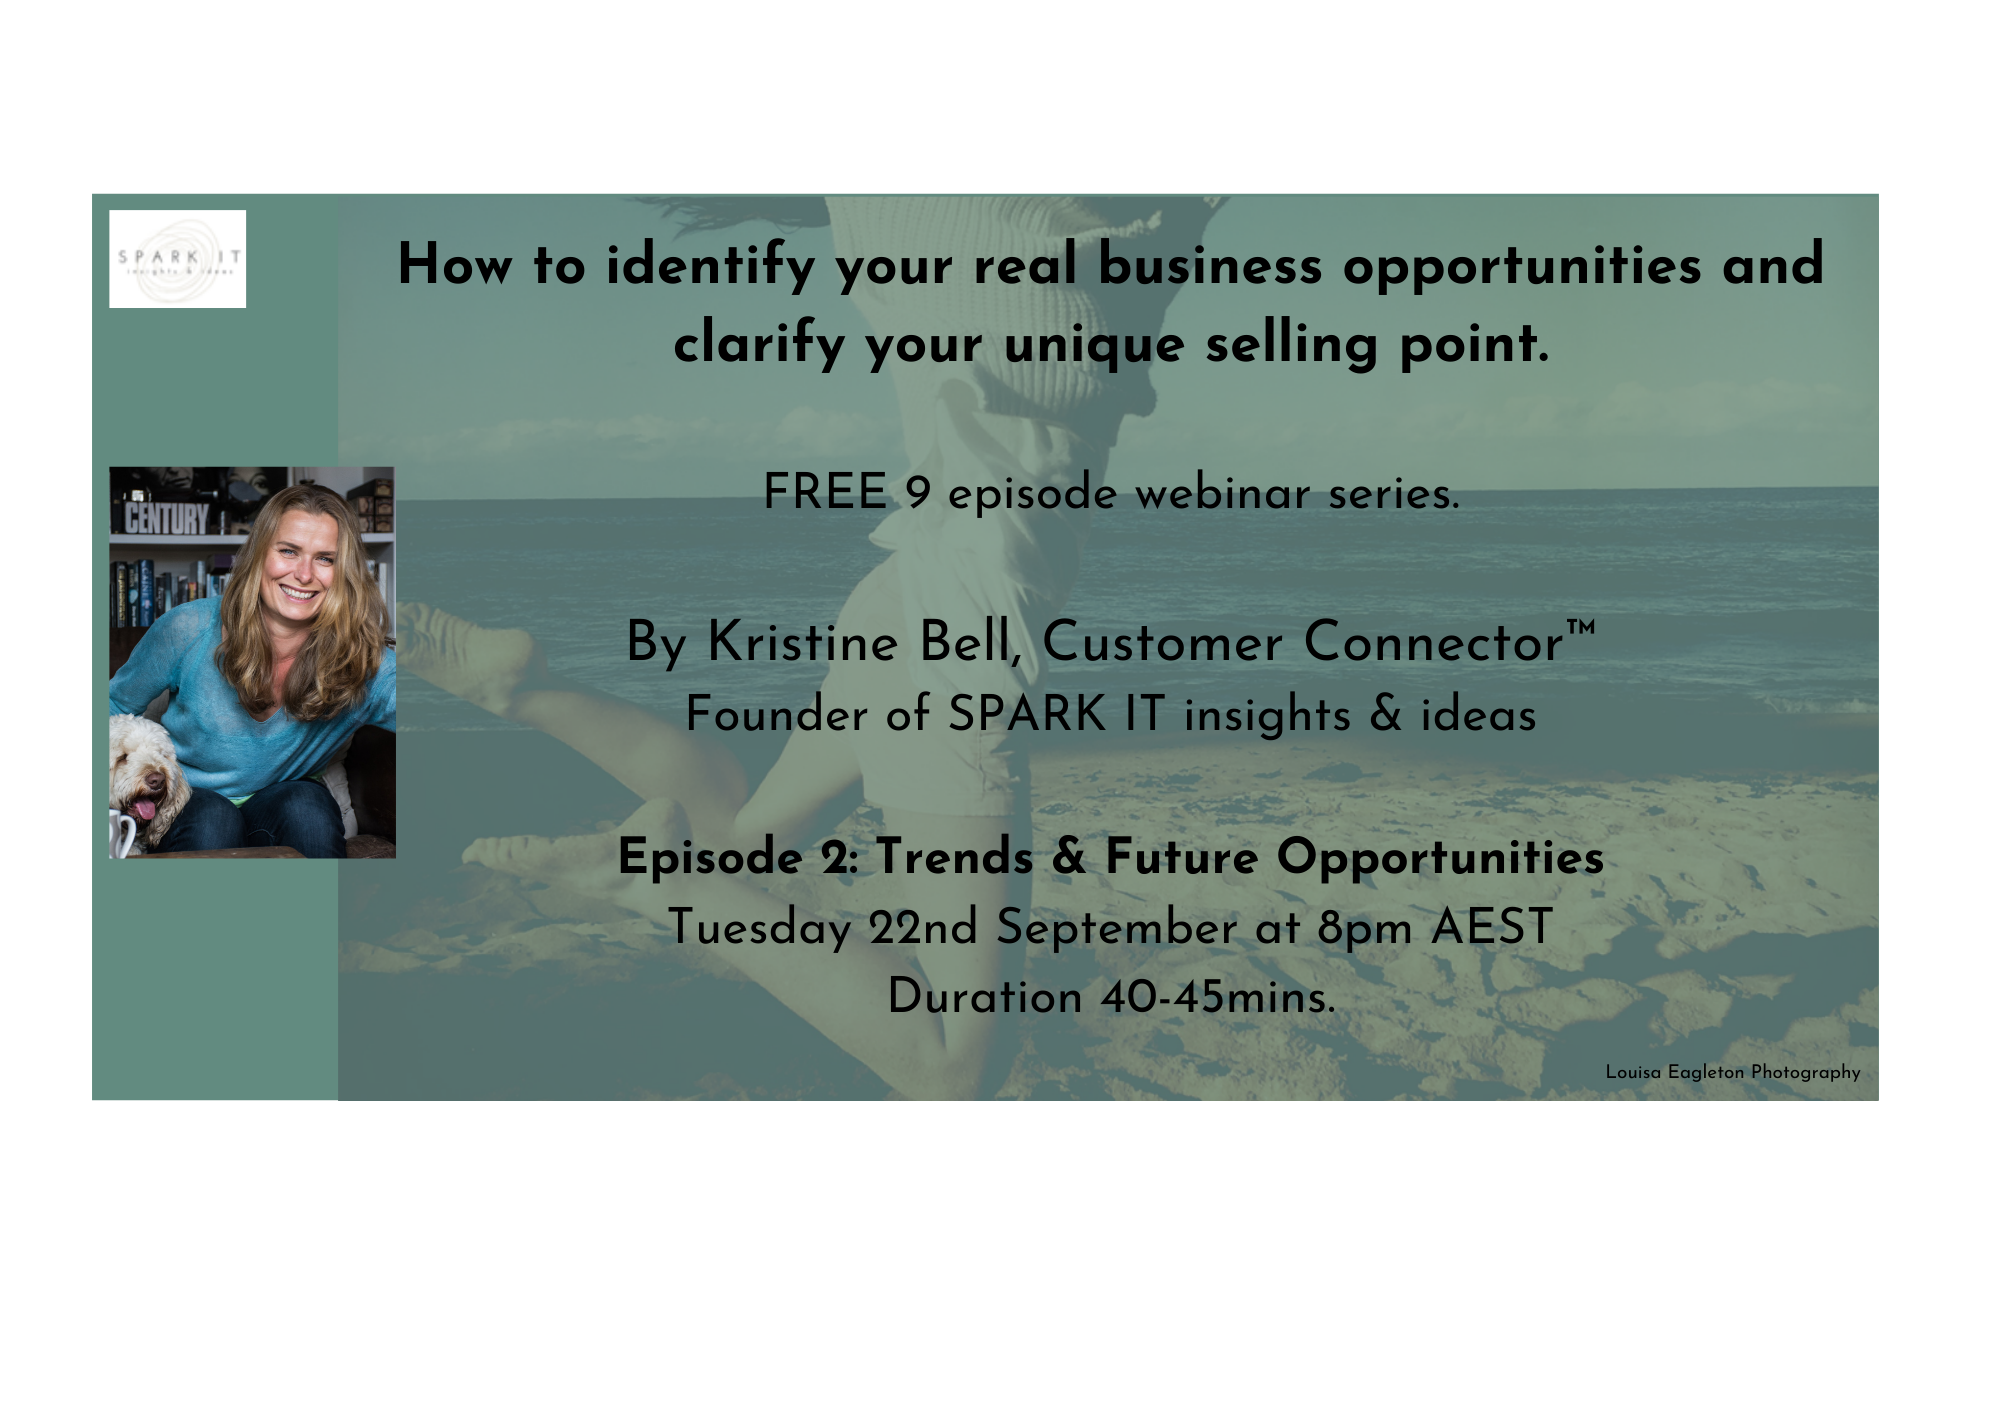 How to identify trends & future opportunities for your business